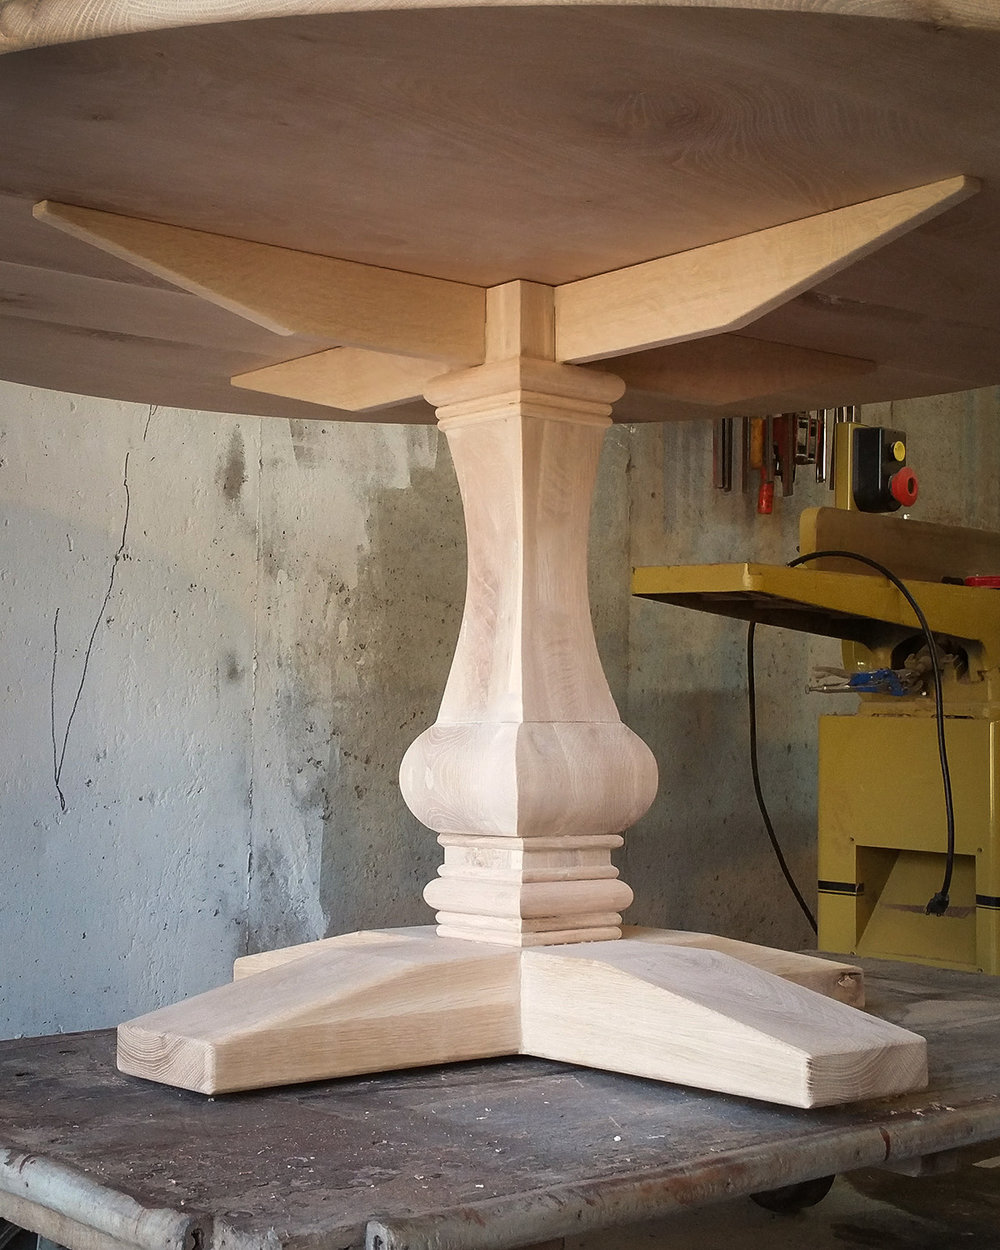 TraditionalOak-Pedestal-Table-Square-Turned-Base-2.jpg